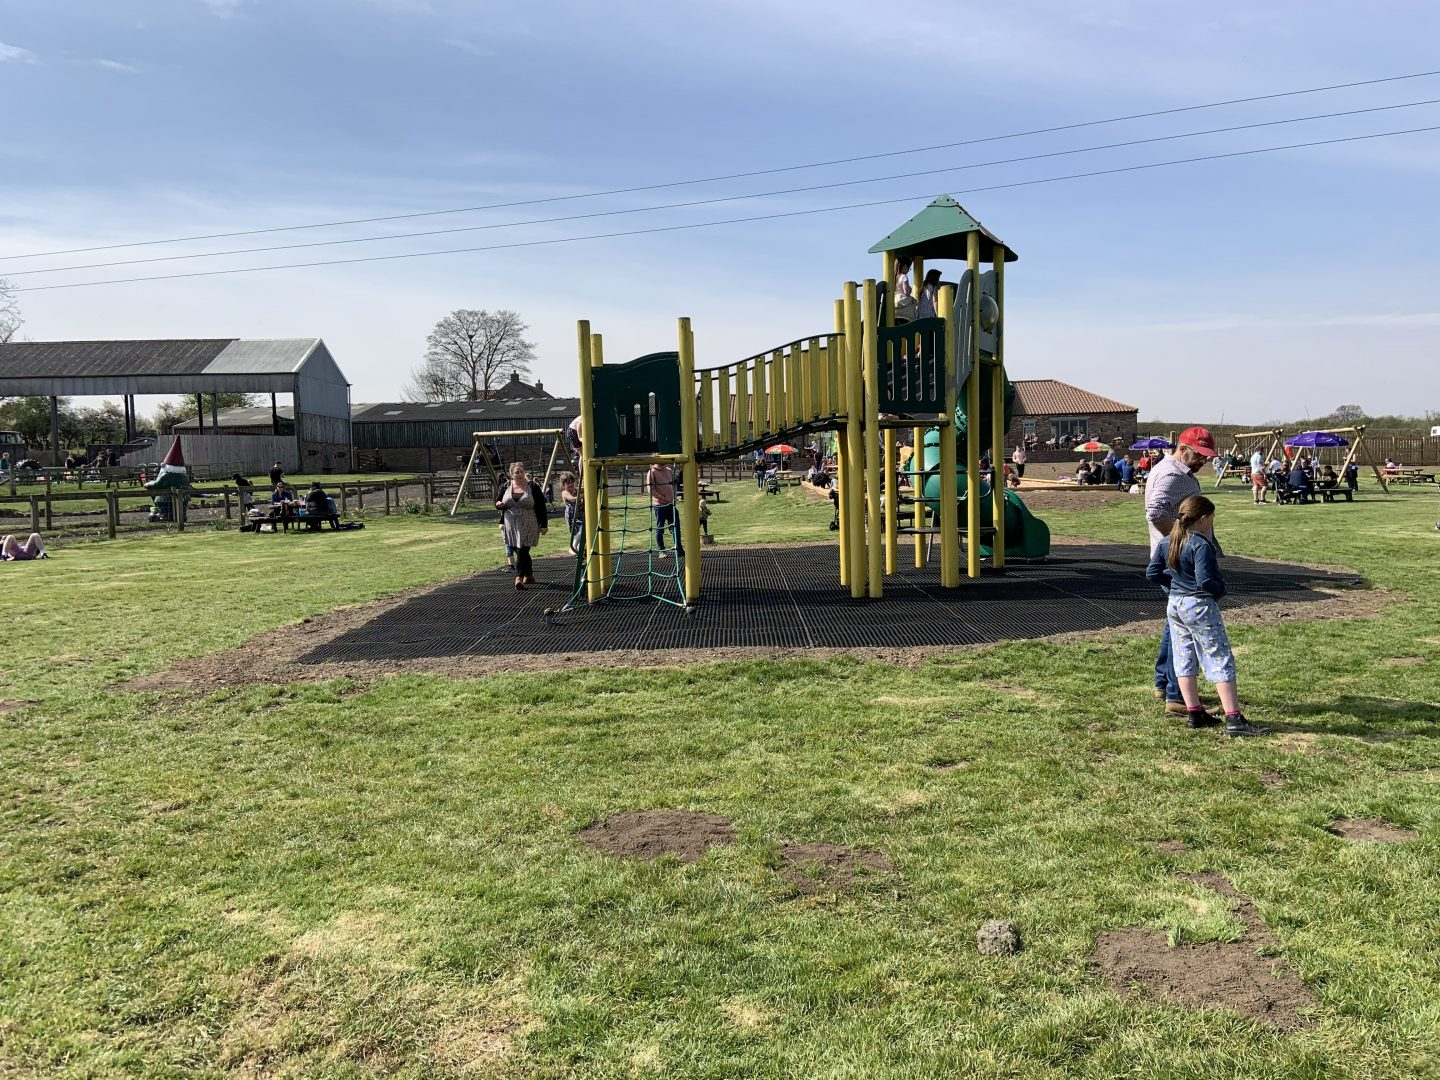 The climbing frame at Monk Park Farm